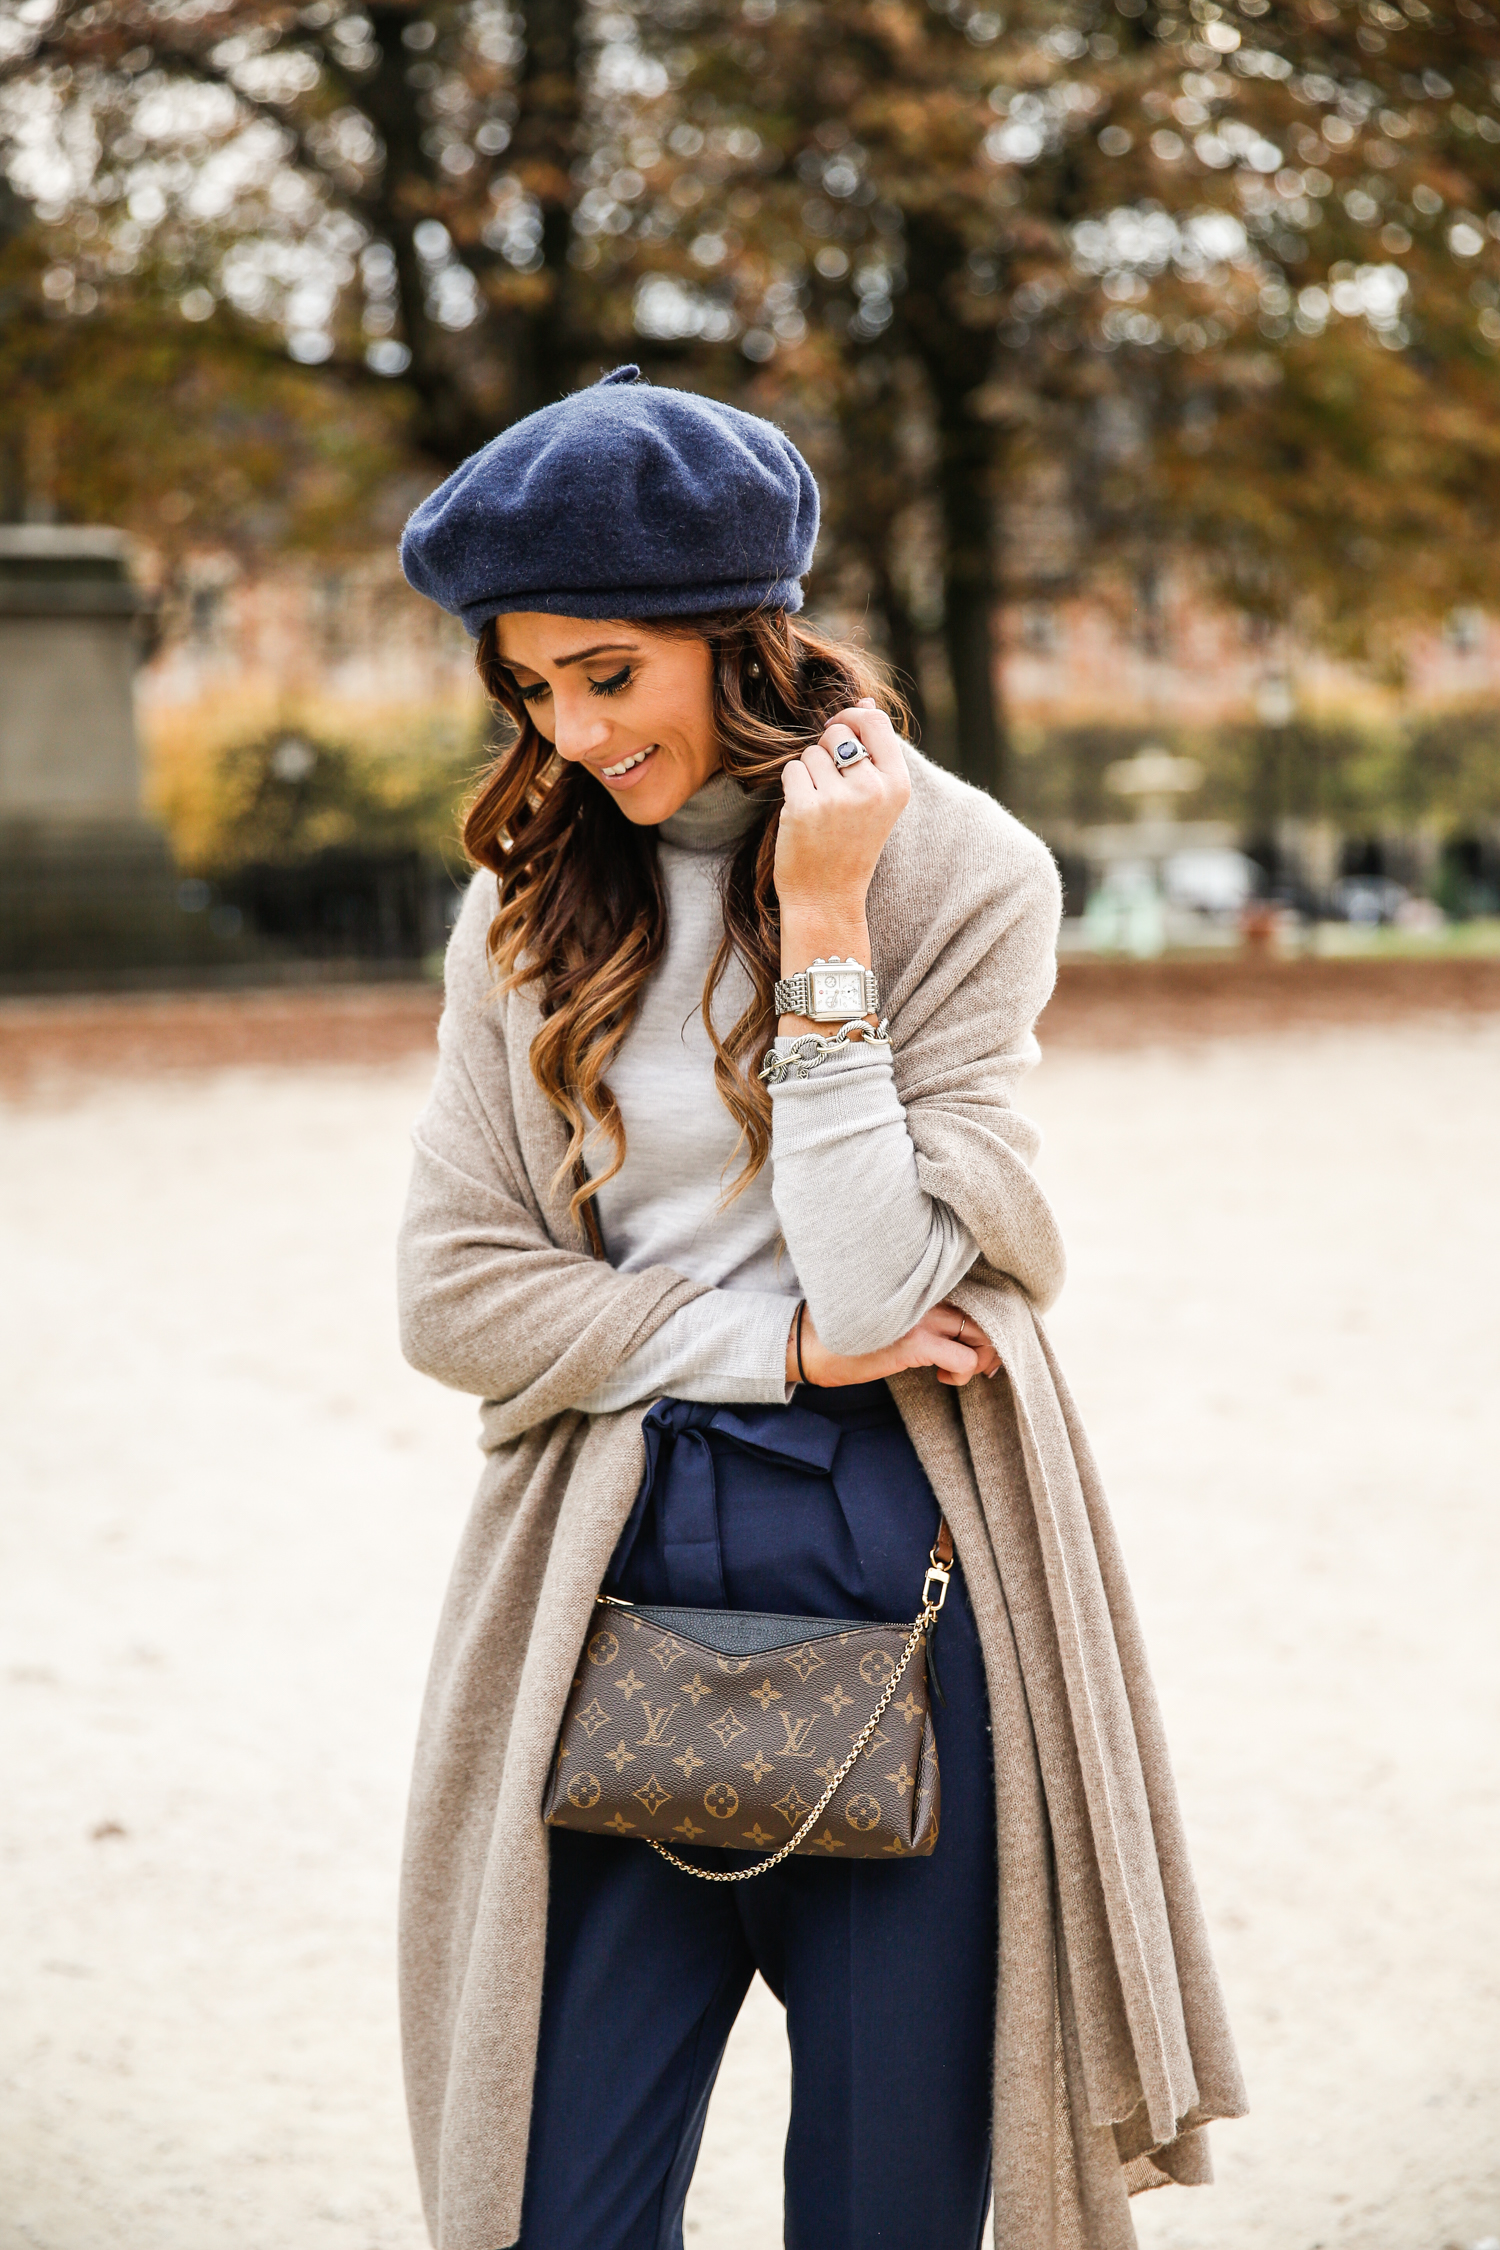 place des vosges, paris, france, what to wear in paris in the fall, fall outfit inspiration, chic fall outfit, asos, cashmere, louis vuitton